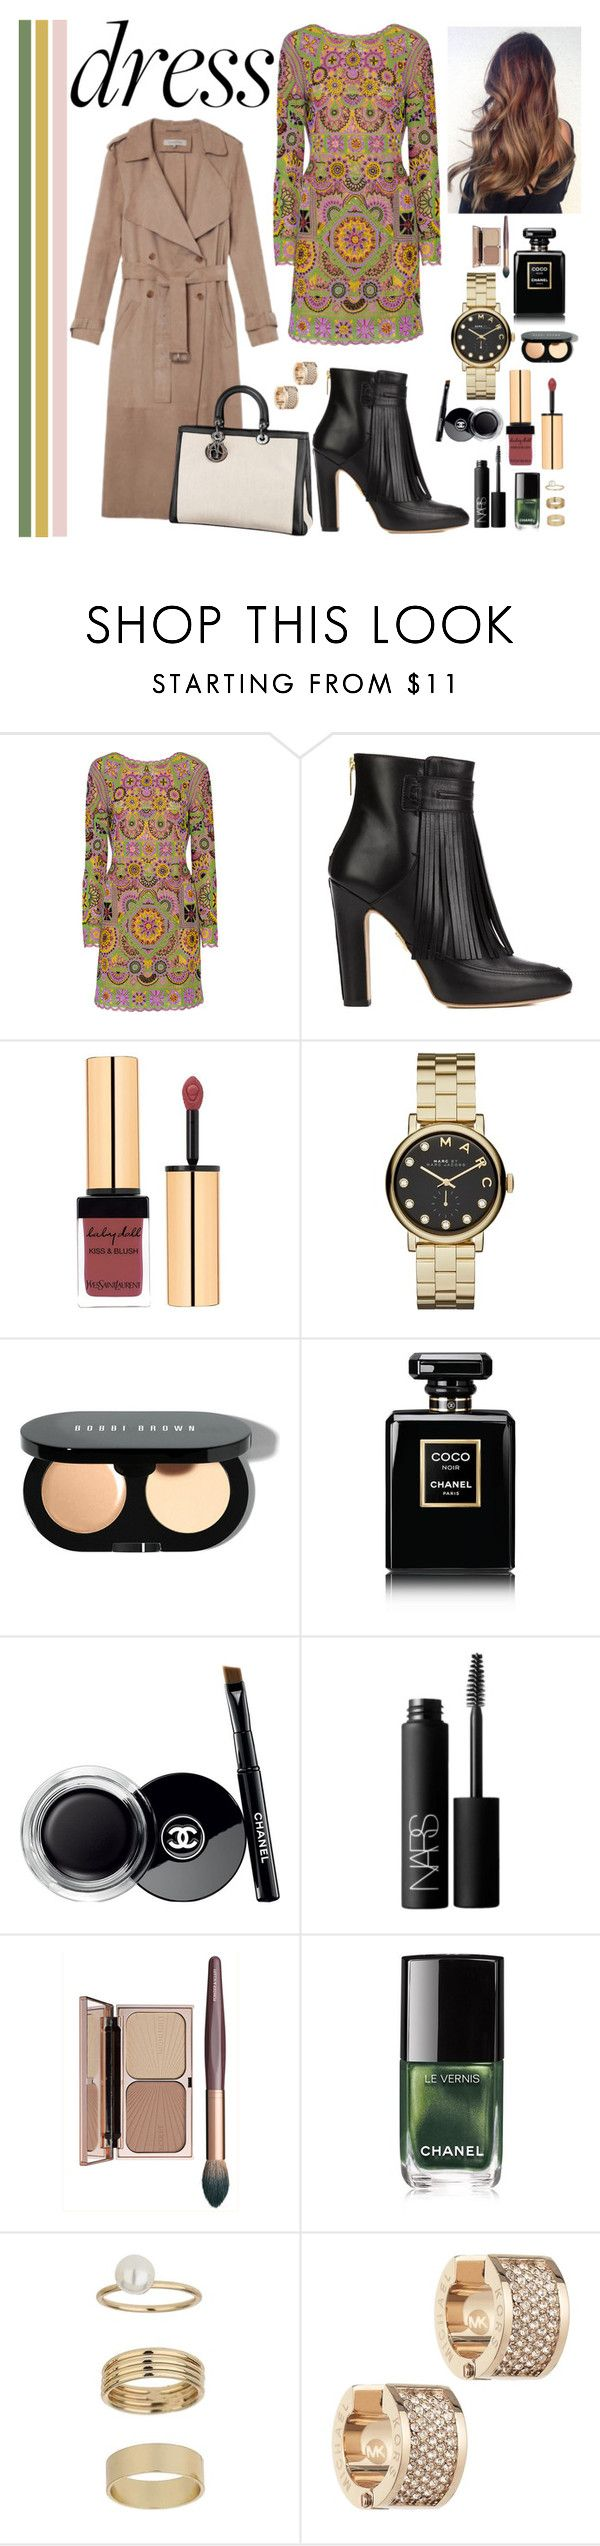 """""""Party On: Long Sleeve Dress"""" by mundstock ❤ liked on Polyvore featuring Emilio Pucci, Maiyet, Yves Saint Laurent, Marc by Marc Jacobs, Bobbi Brown Cosmetics, Chanel, NARS Cosmetics, Miss Selfridge, Christian Dior and Michael Kors"""